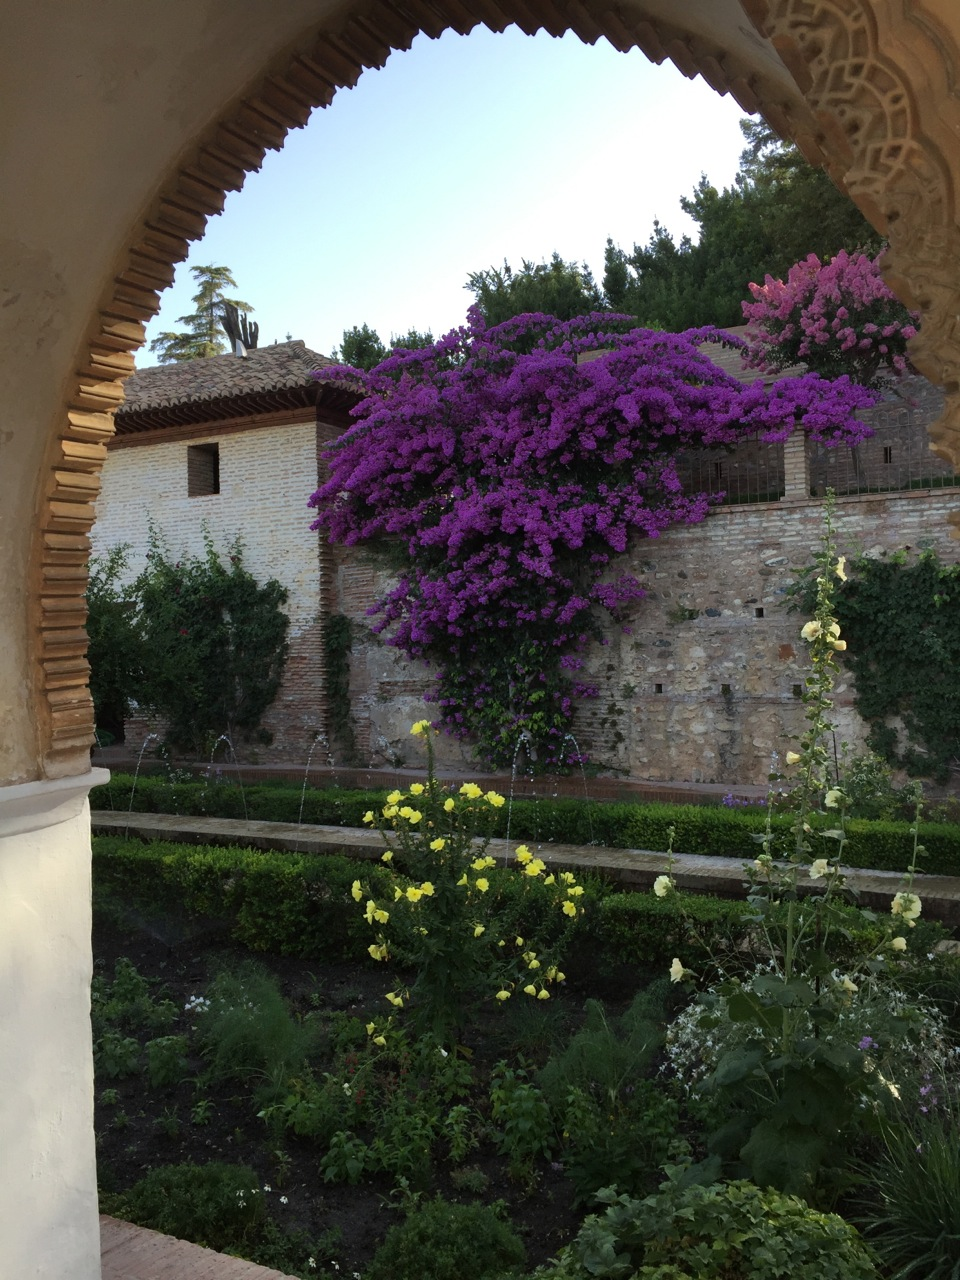 A view of the gardens at the Generaliffe, at the Alhambra in Granada